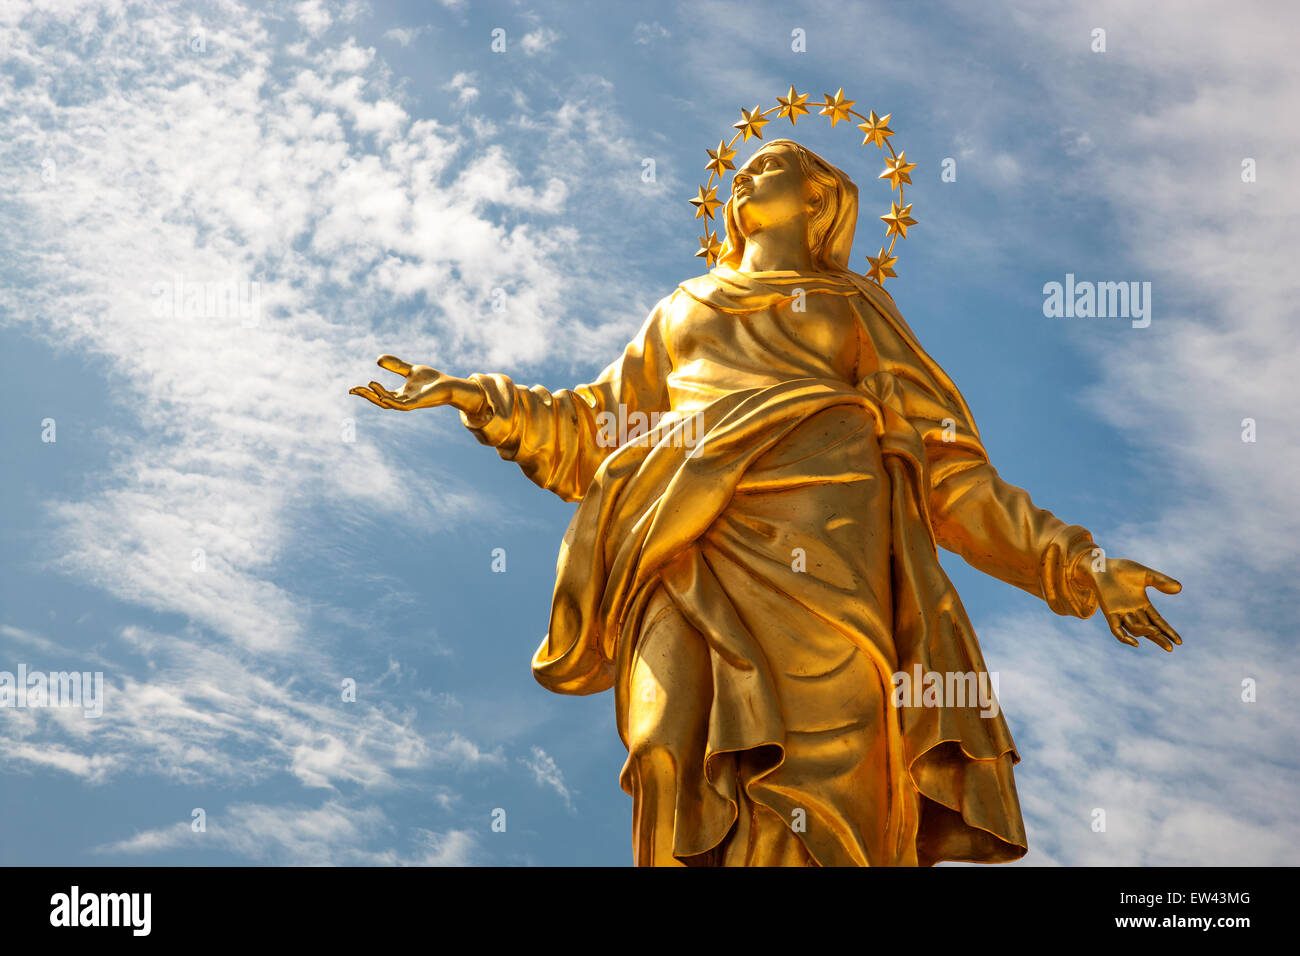 Milan, Duomo , Madonna, cathedral, church, statue, gold, religion, Italian, - Stock Image